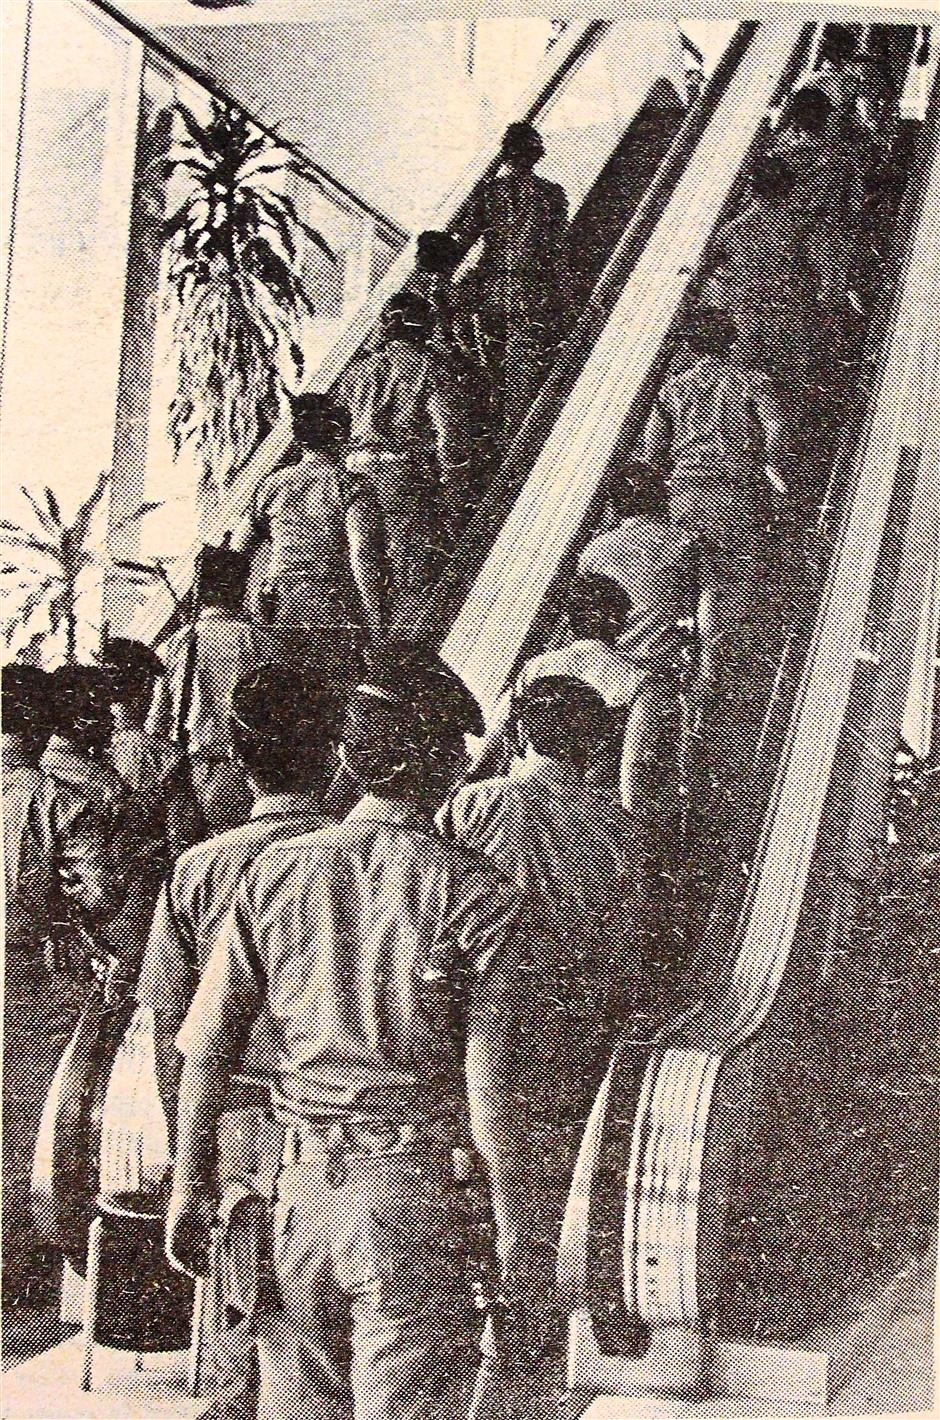 The Police Field Force heading up the AIA Building escalator on Aug 4, 1975 to take up positions after the Japanese Red Army seized the 9th floor. Note: Pix re-shoot from The Star